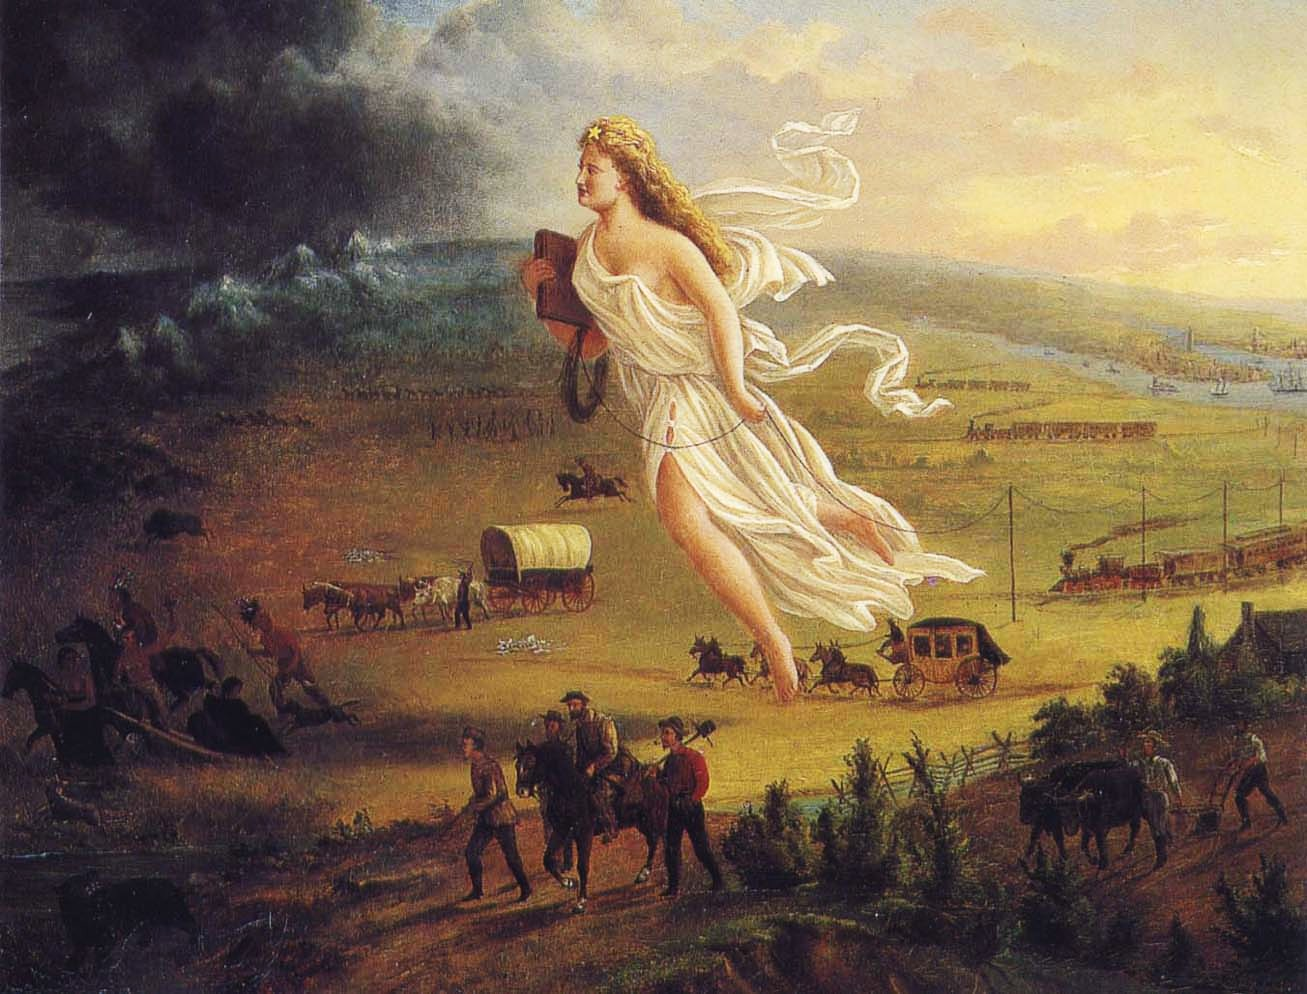 manifest destiny the effects of nineteenth Manifest destiny outline:  effects of the fur trade on american indians  women in the 19th century women in america, 1820-1842.